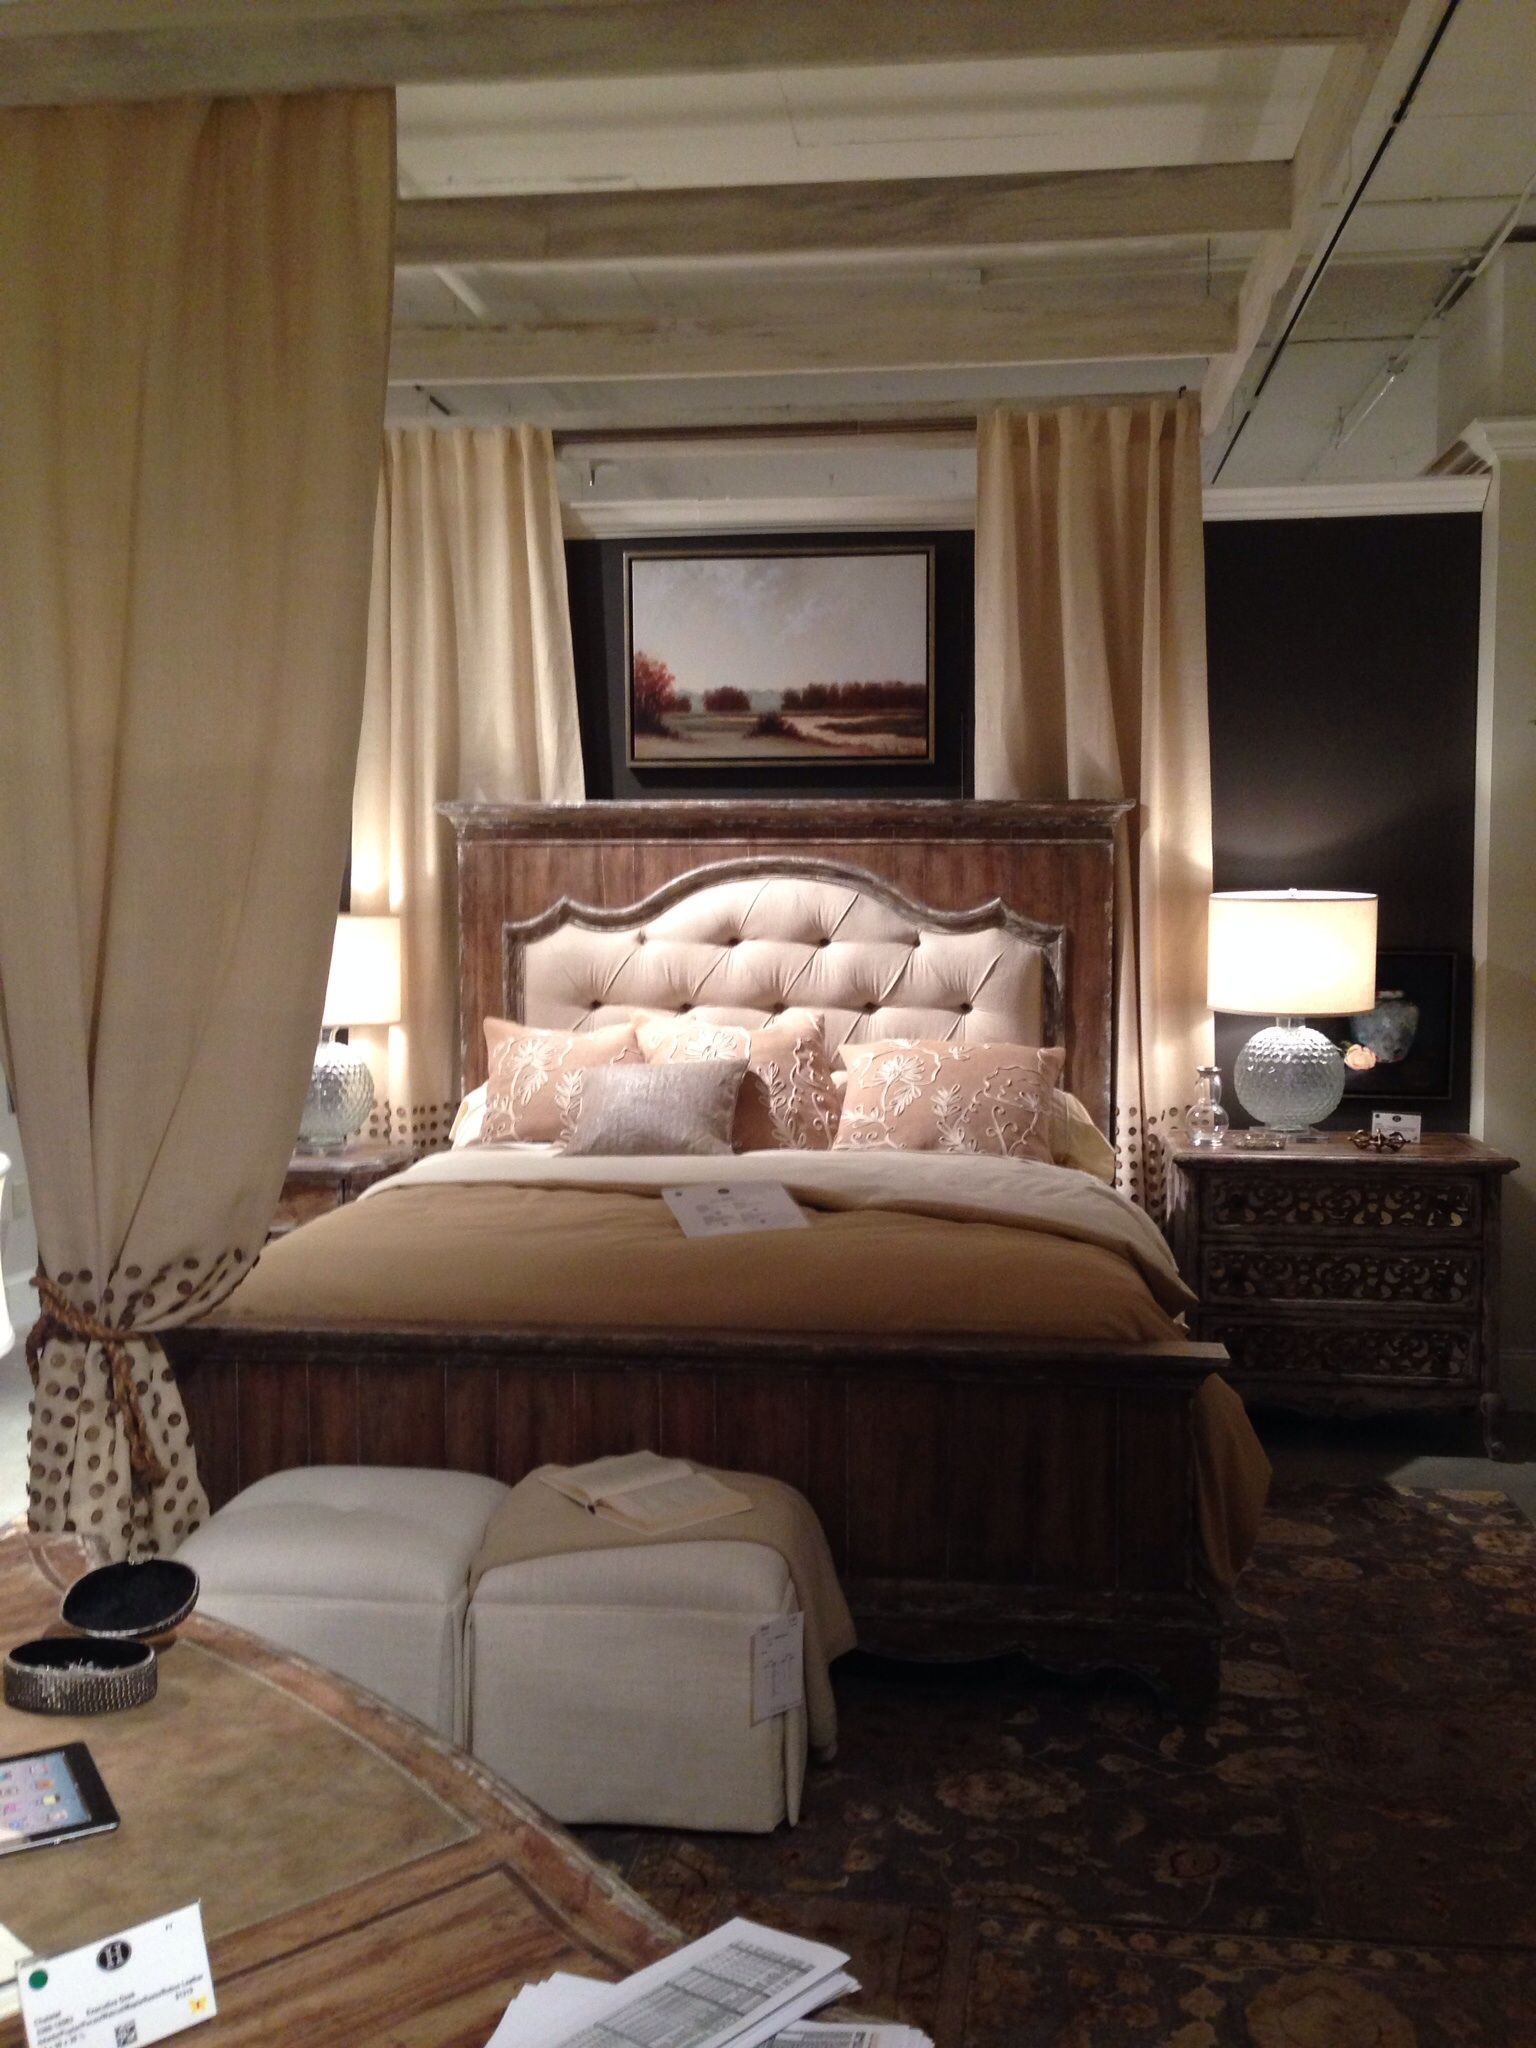 The new mantle bed from the Chatelet collection by Hooker Furniture ...